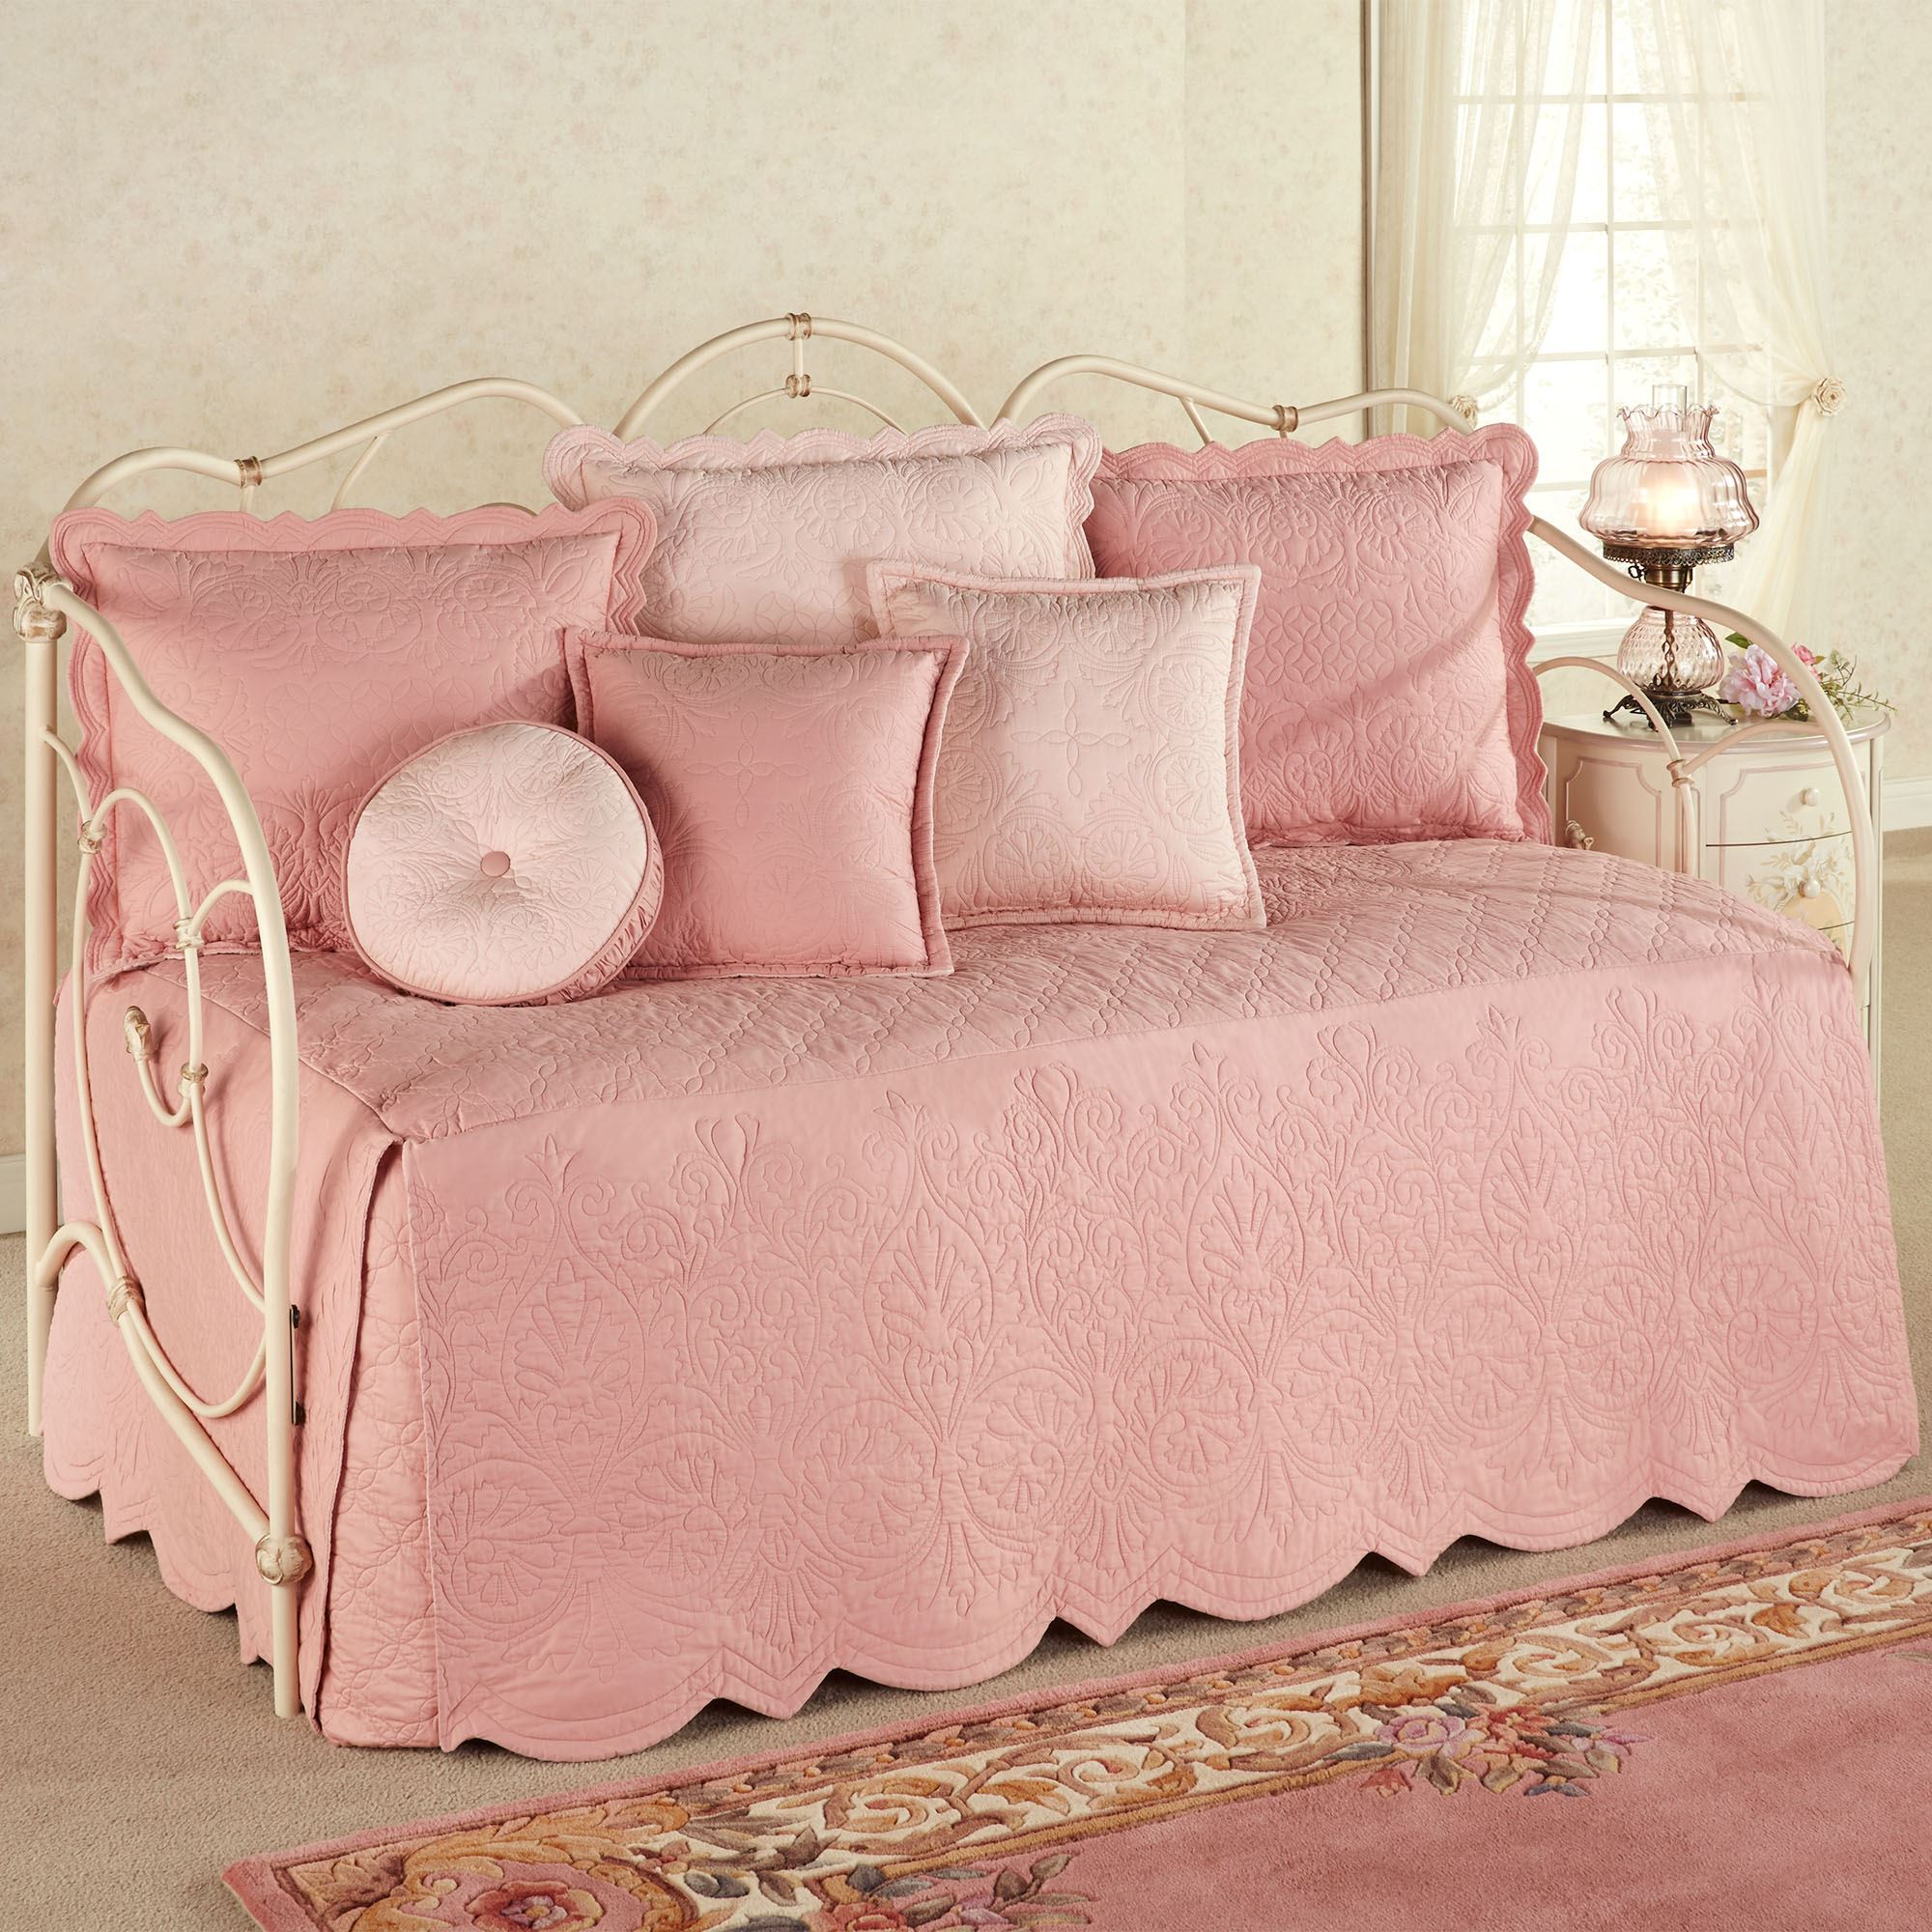 Evermore Coral Blush Daybed Bedding Set